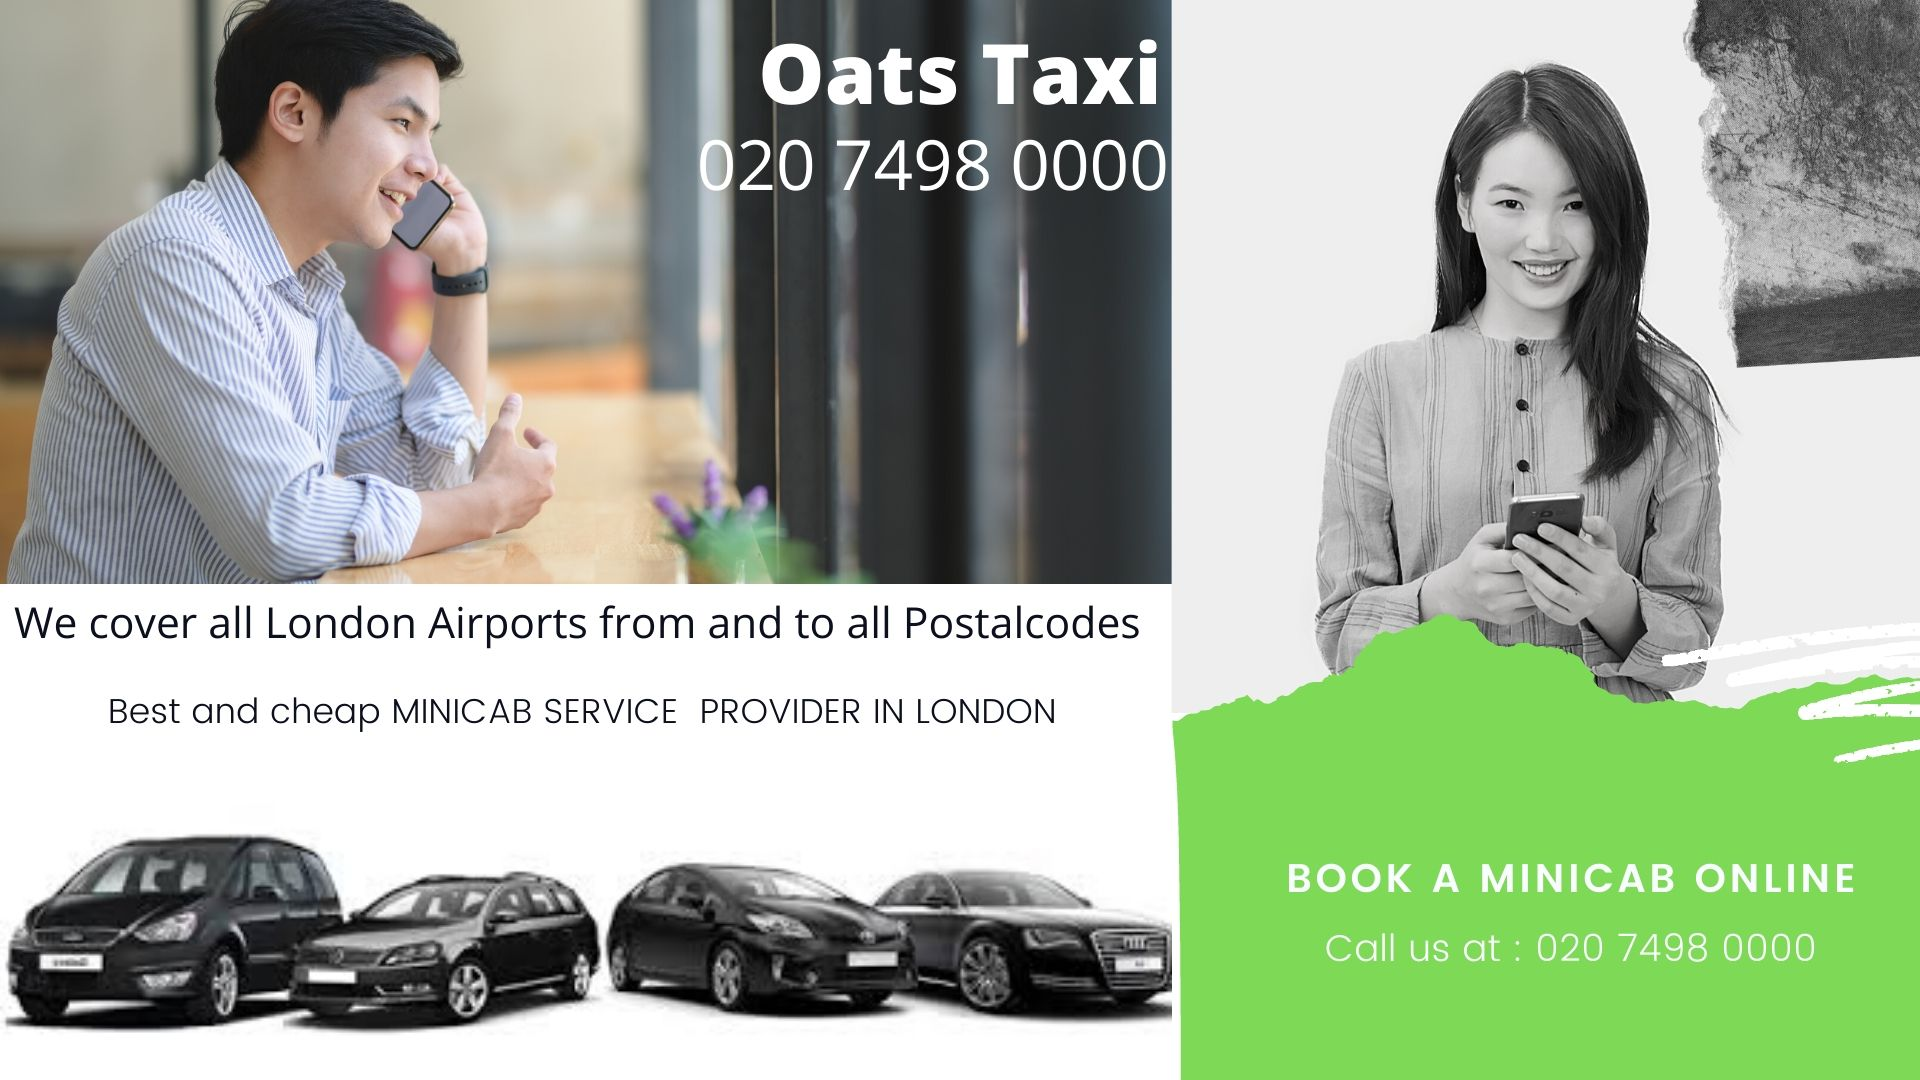 Nearest Minicab Office in Theatreland | Minicab Gatwick Airport | Call now : 02074980000